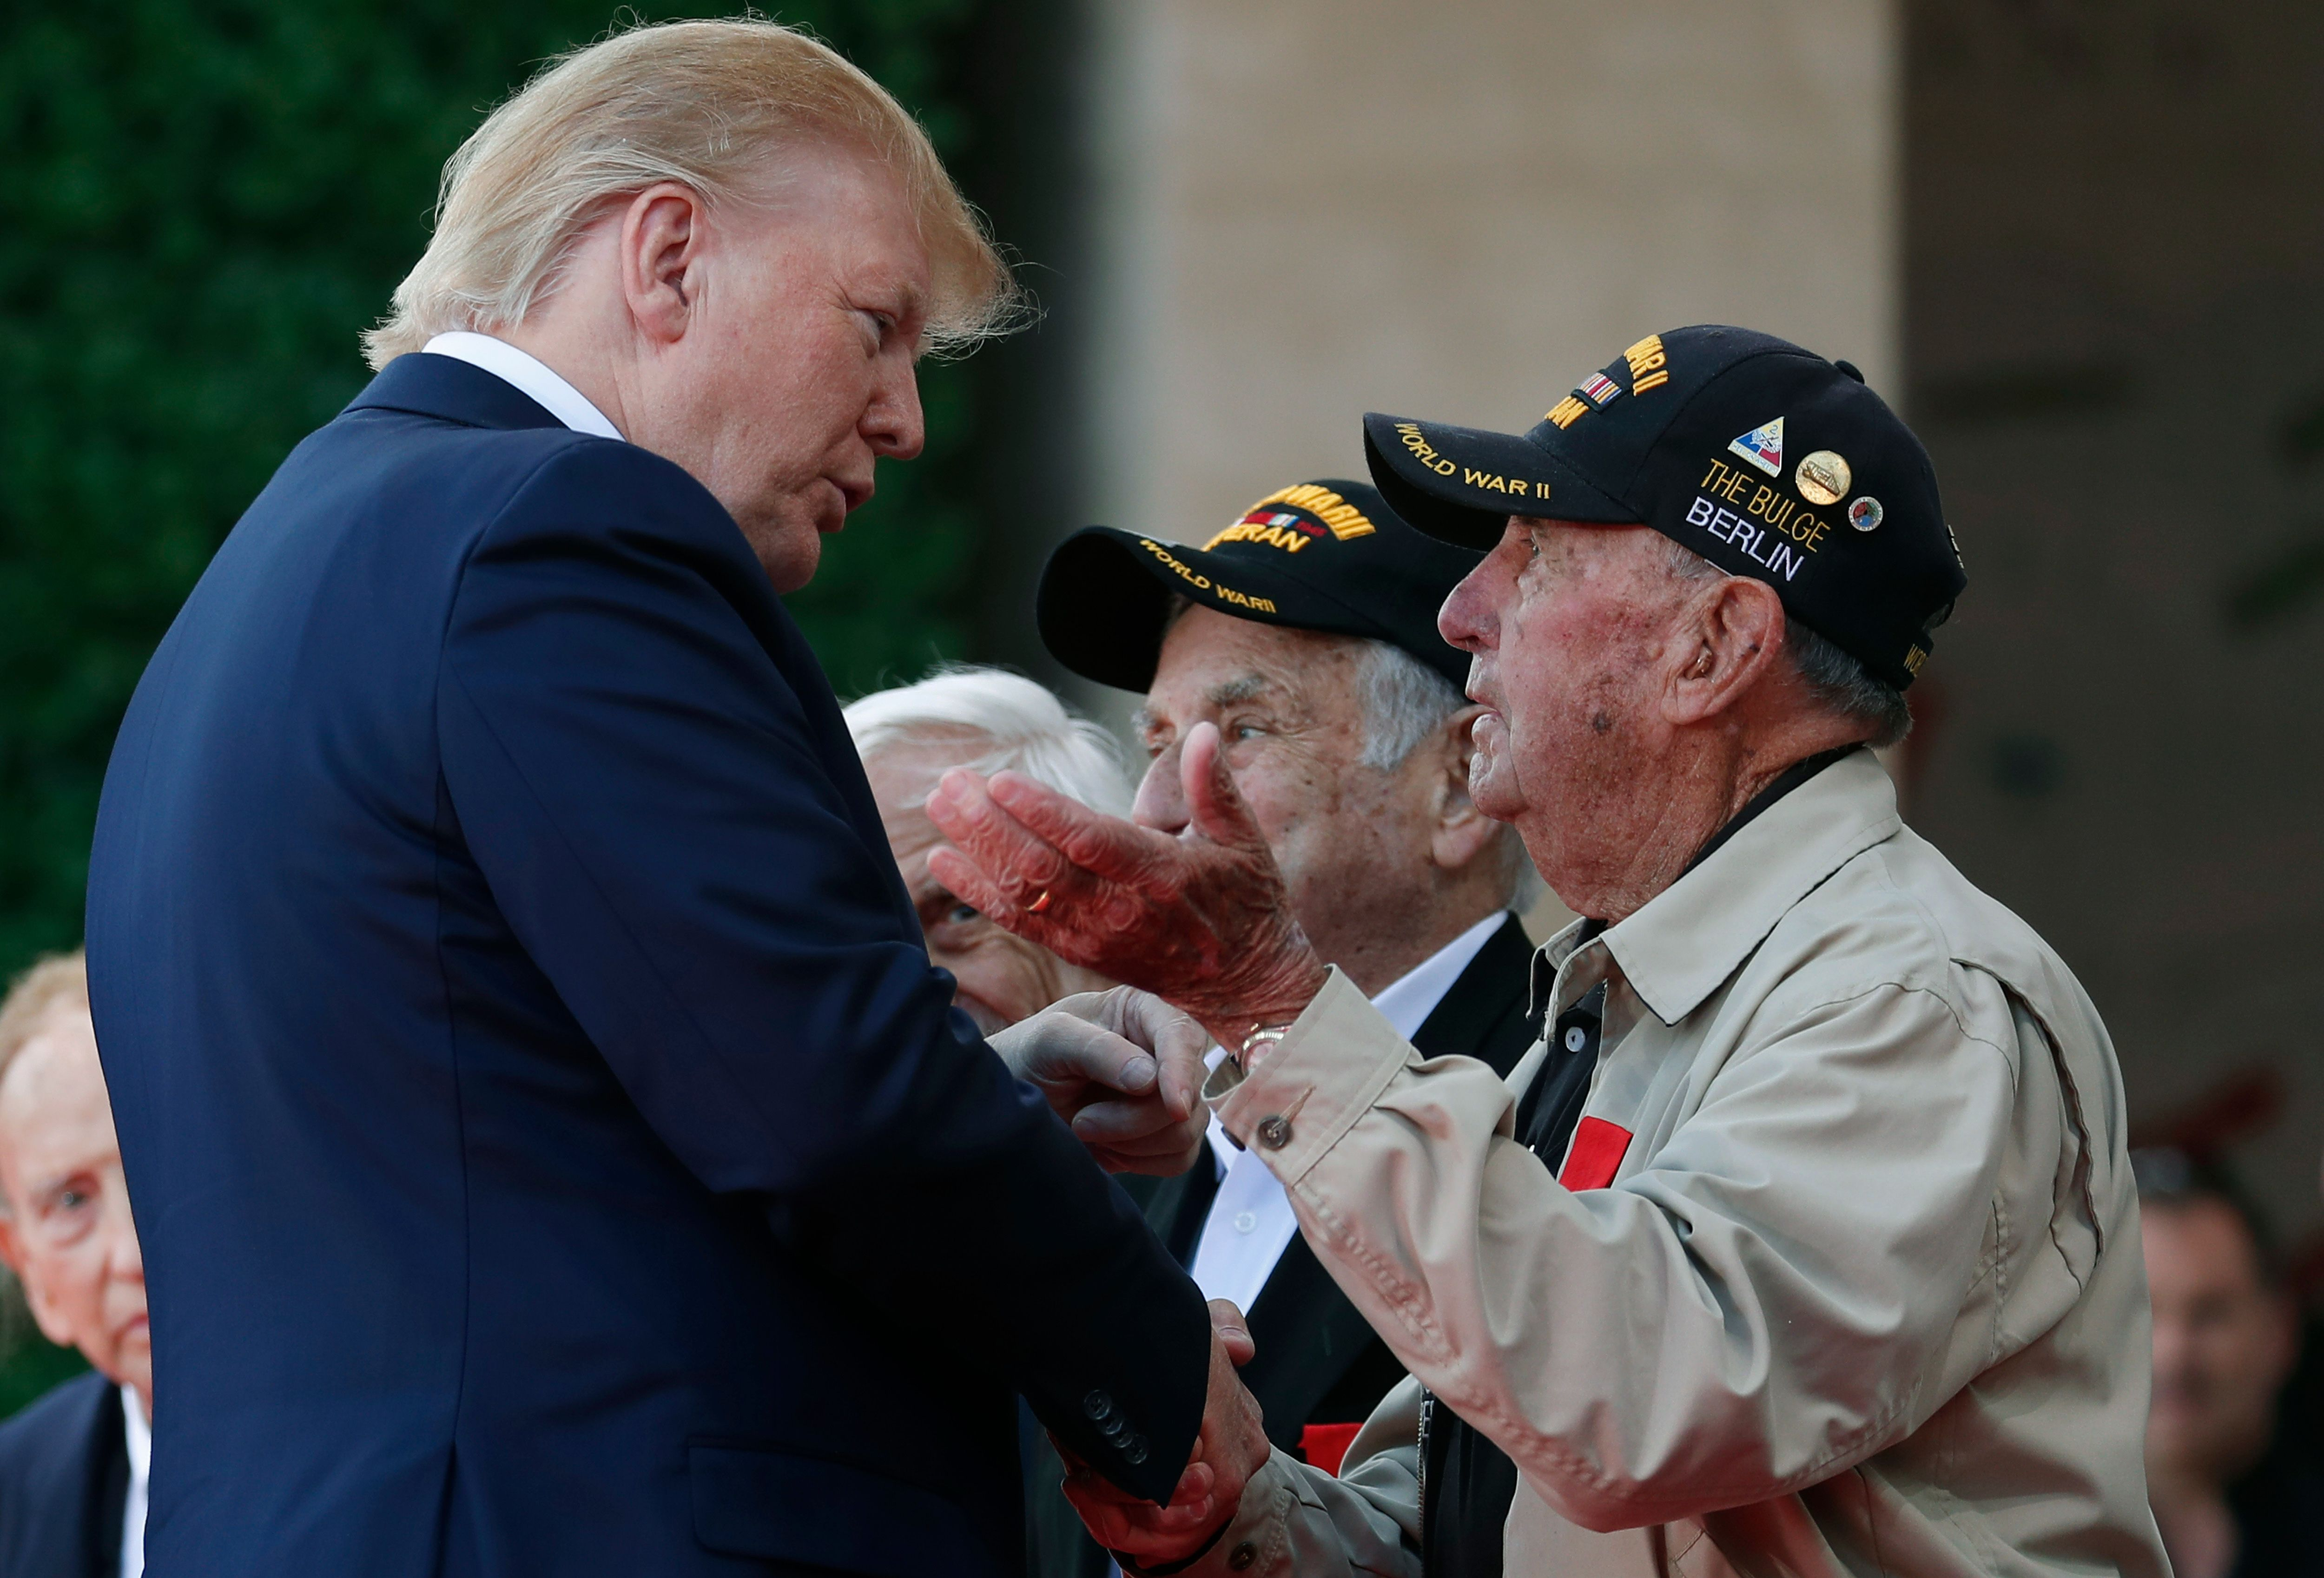 US President Donald Trump (C) greets an US veteran during a French-US ceremony at the Normandy American Cemetery and Memorial in Colleville-sur-Mer, Normandy, northwestern France, on June 6, 2019, as part of D-Day commemorations marking the 75th anniversary of the World War II Allied landings in Normandy. (IAN LANGSDON/AFP via Getty Images)